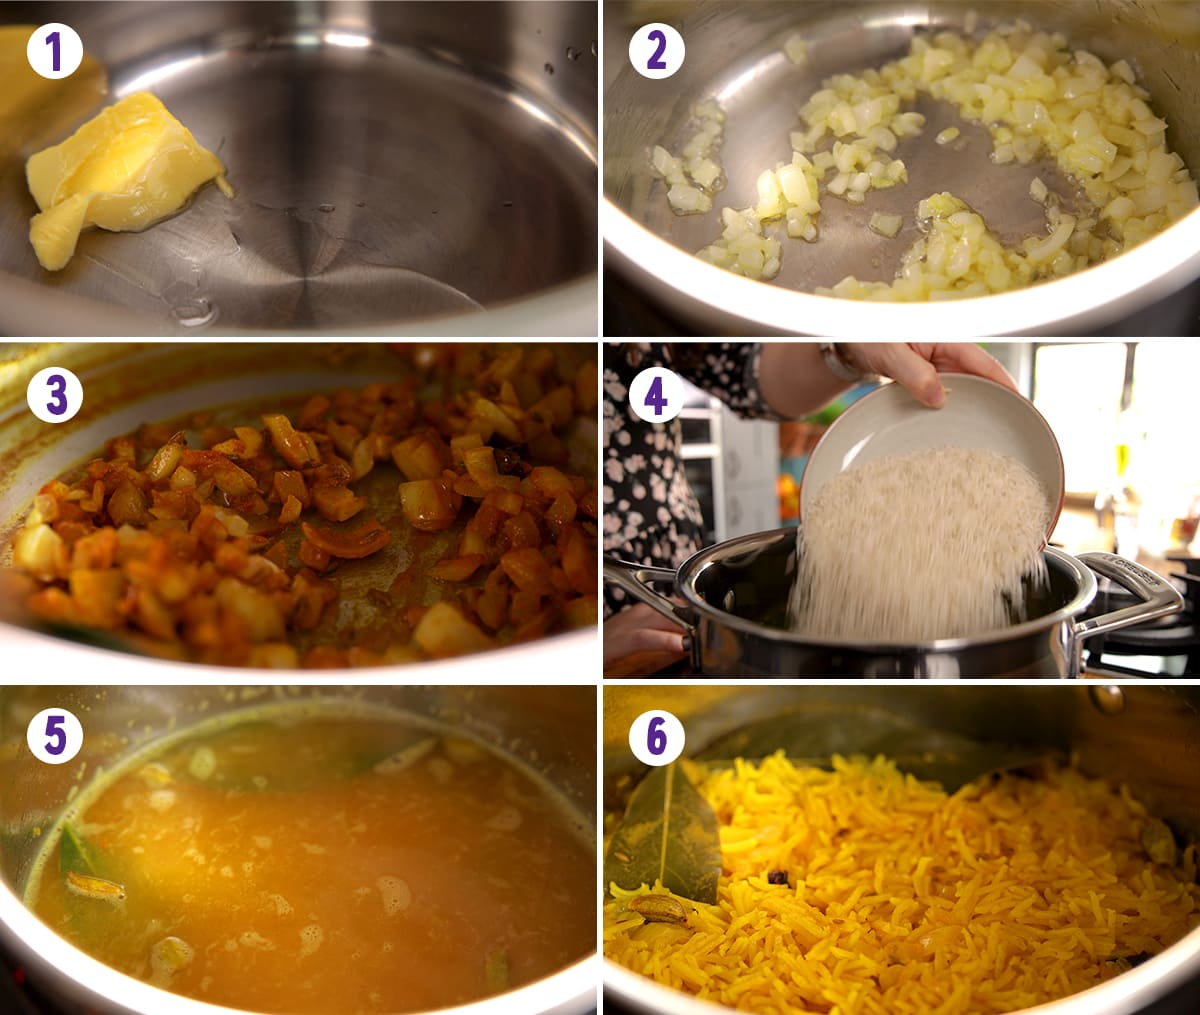 6 image collage showing how to make Pilau rice